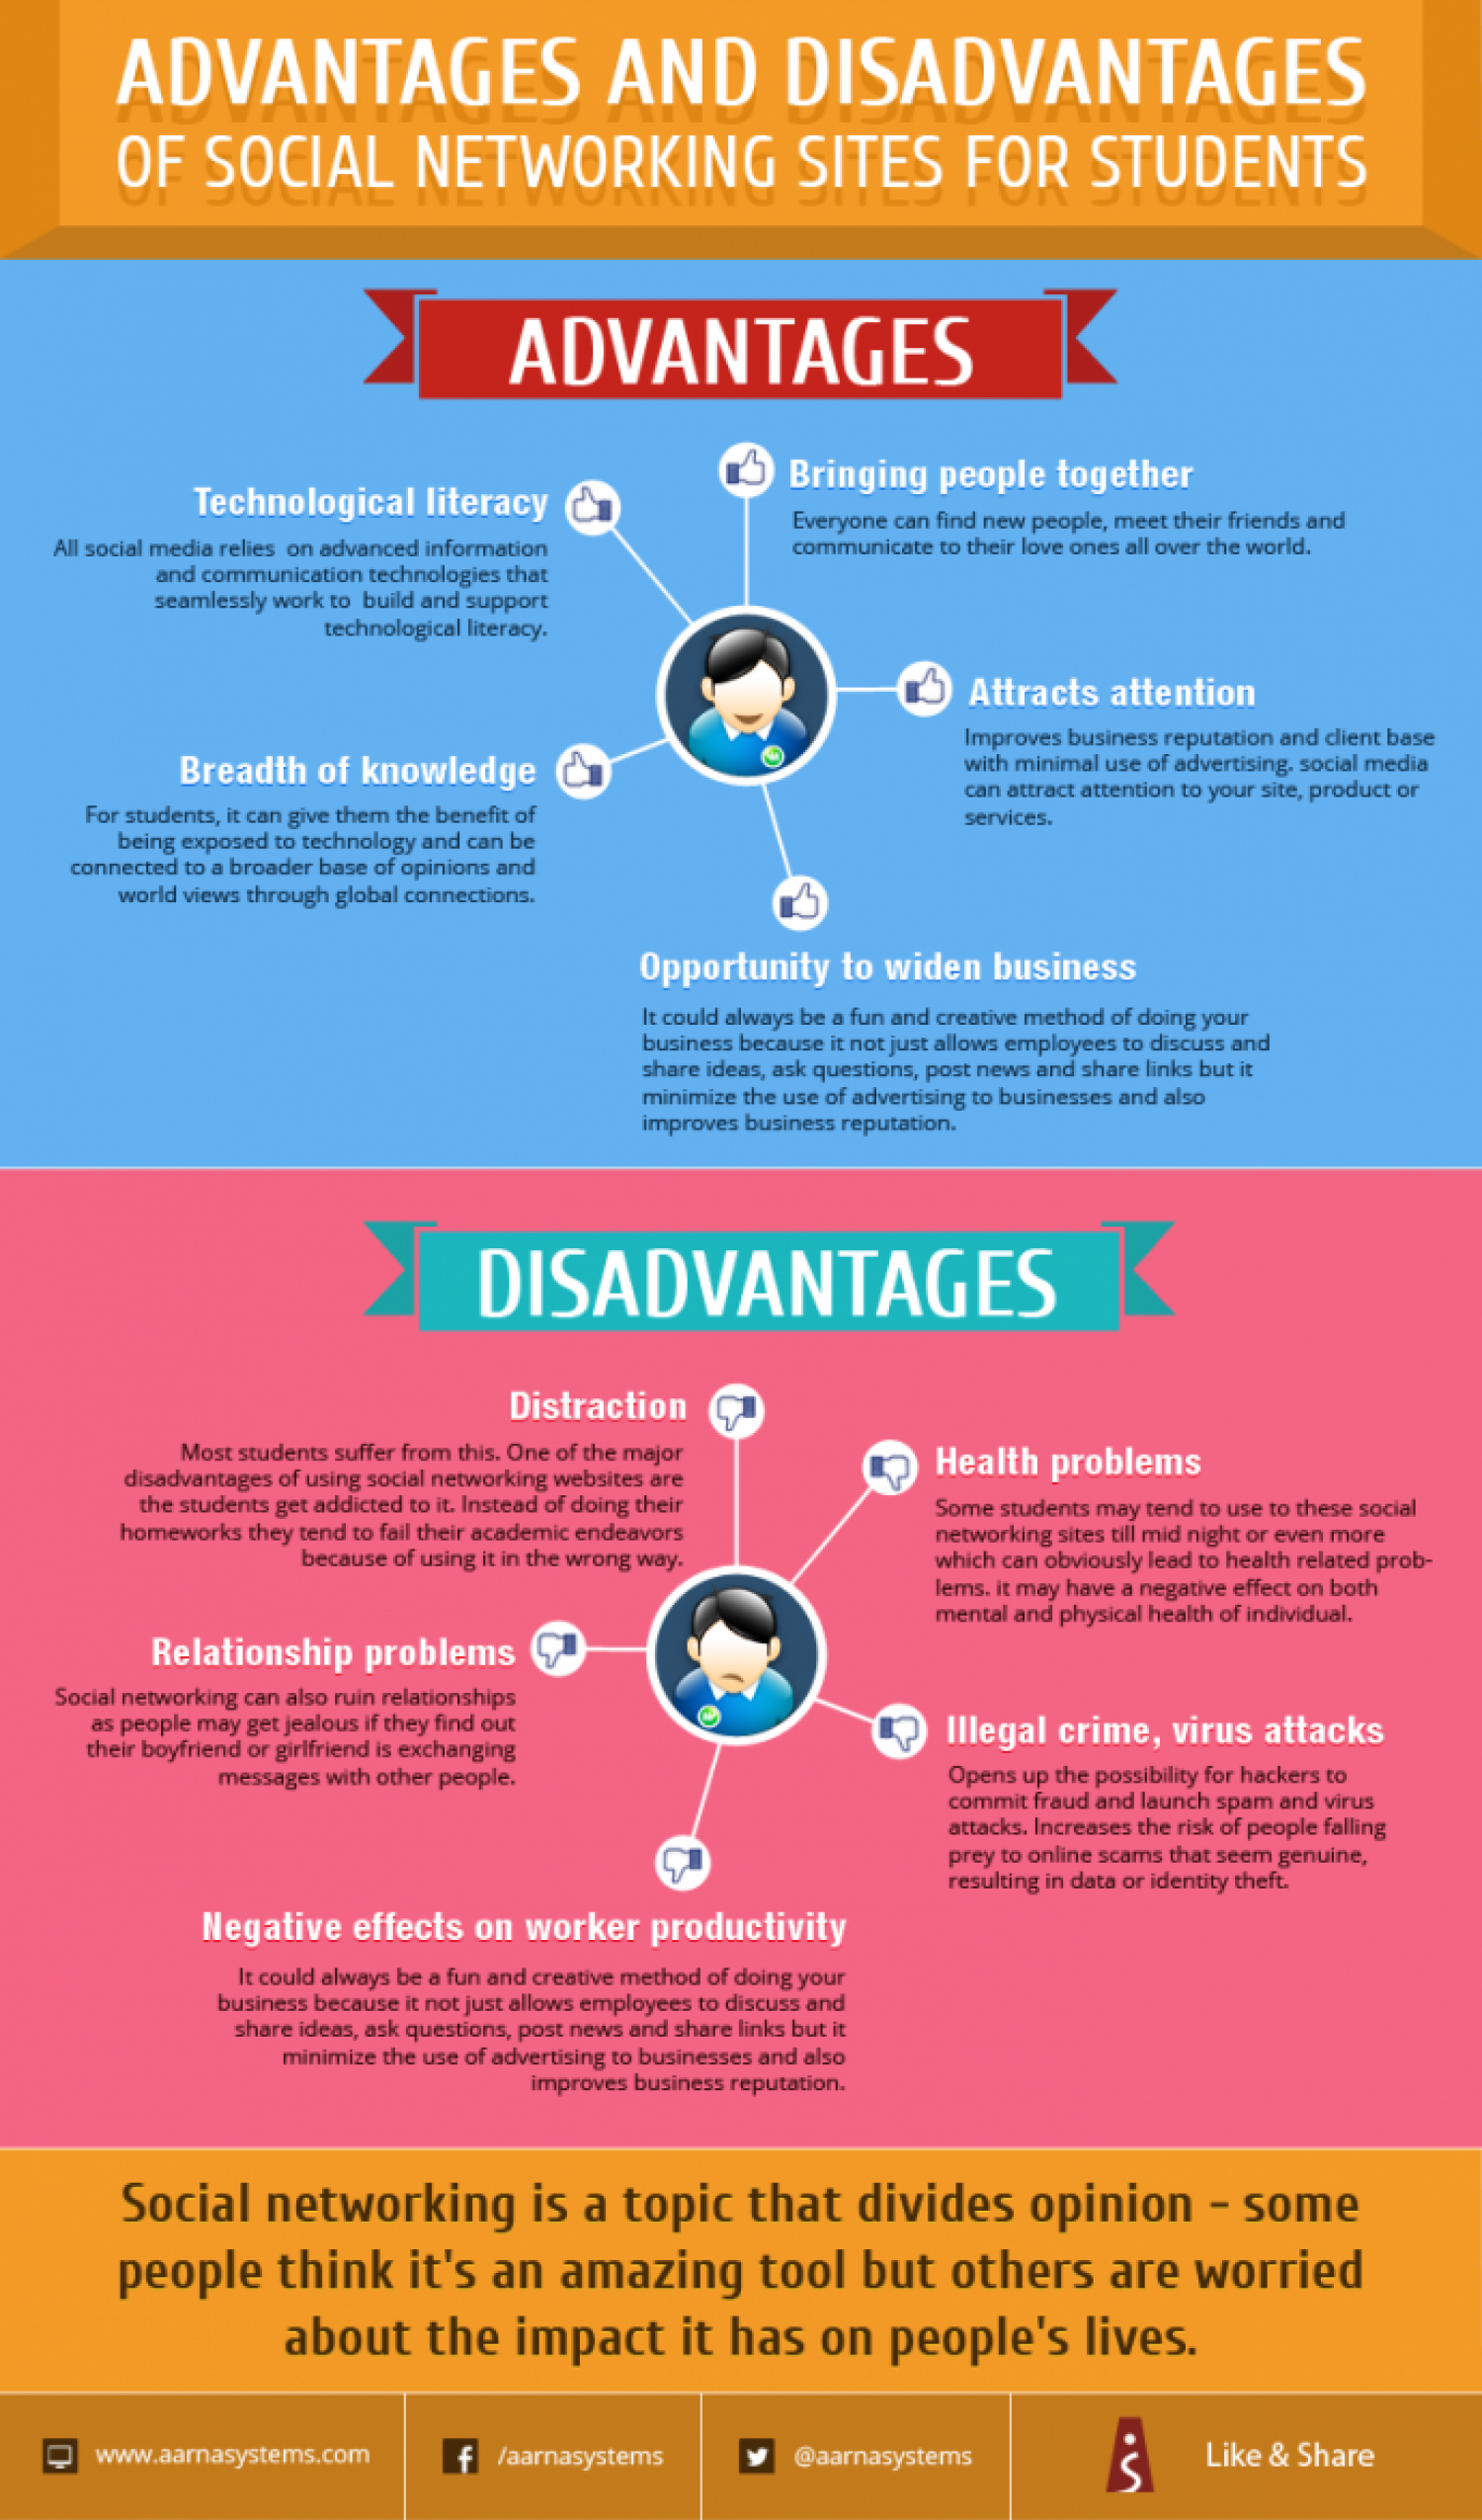 Advantages and Disadvantages of Social Networking Sites for Students Infographic